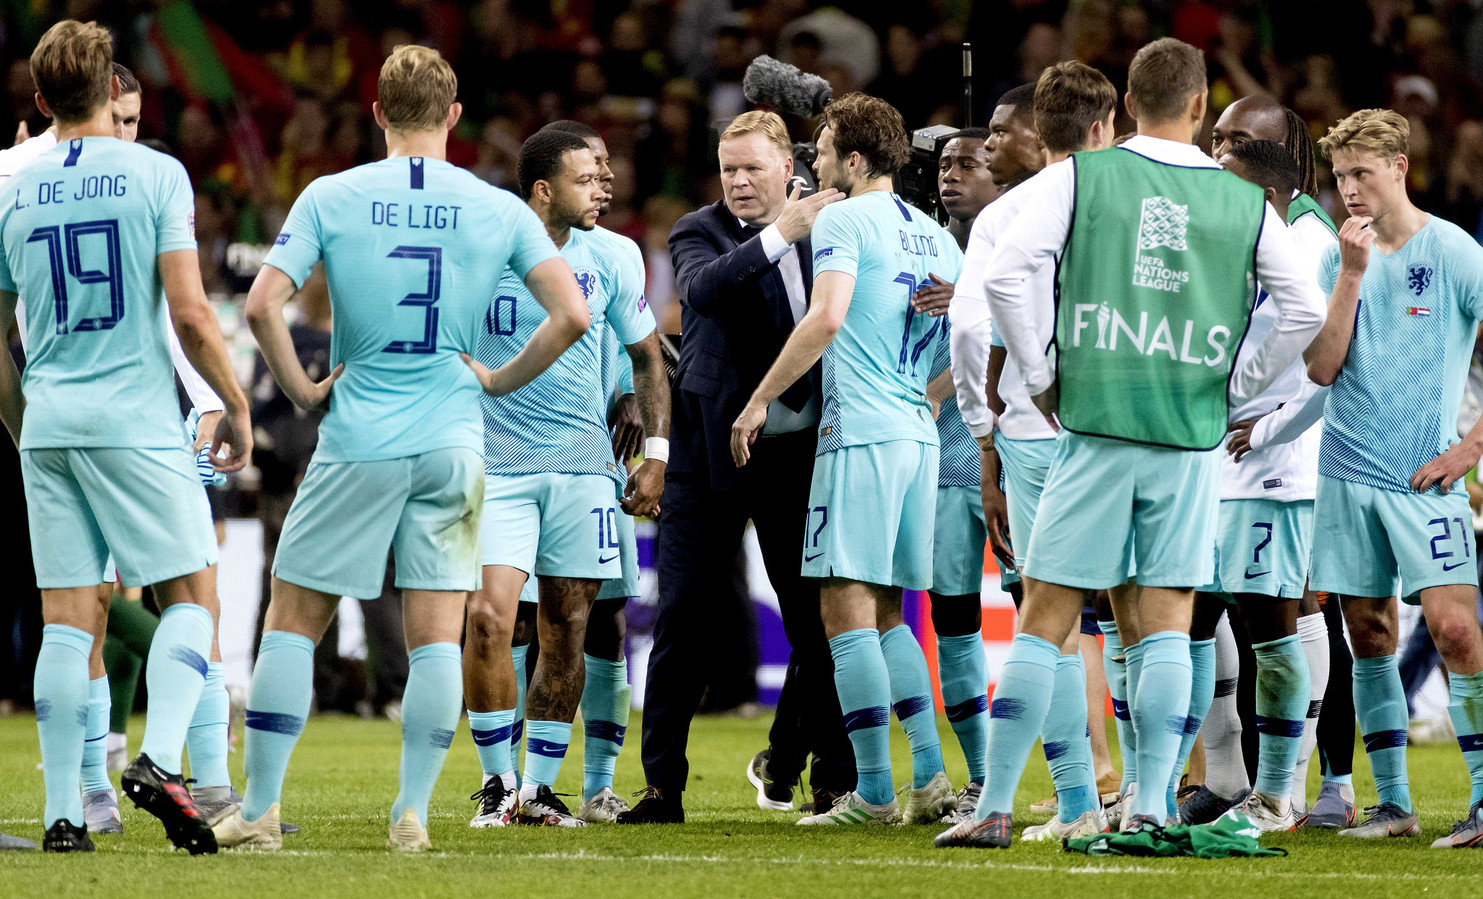 Memphis Depay, bondscoach Ronald Koeman en Daley Blind na de finale van de Nations League.